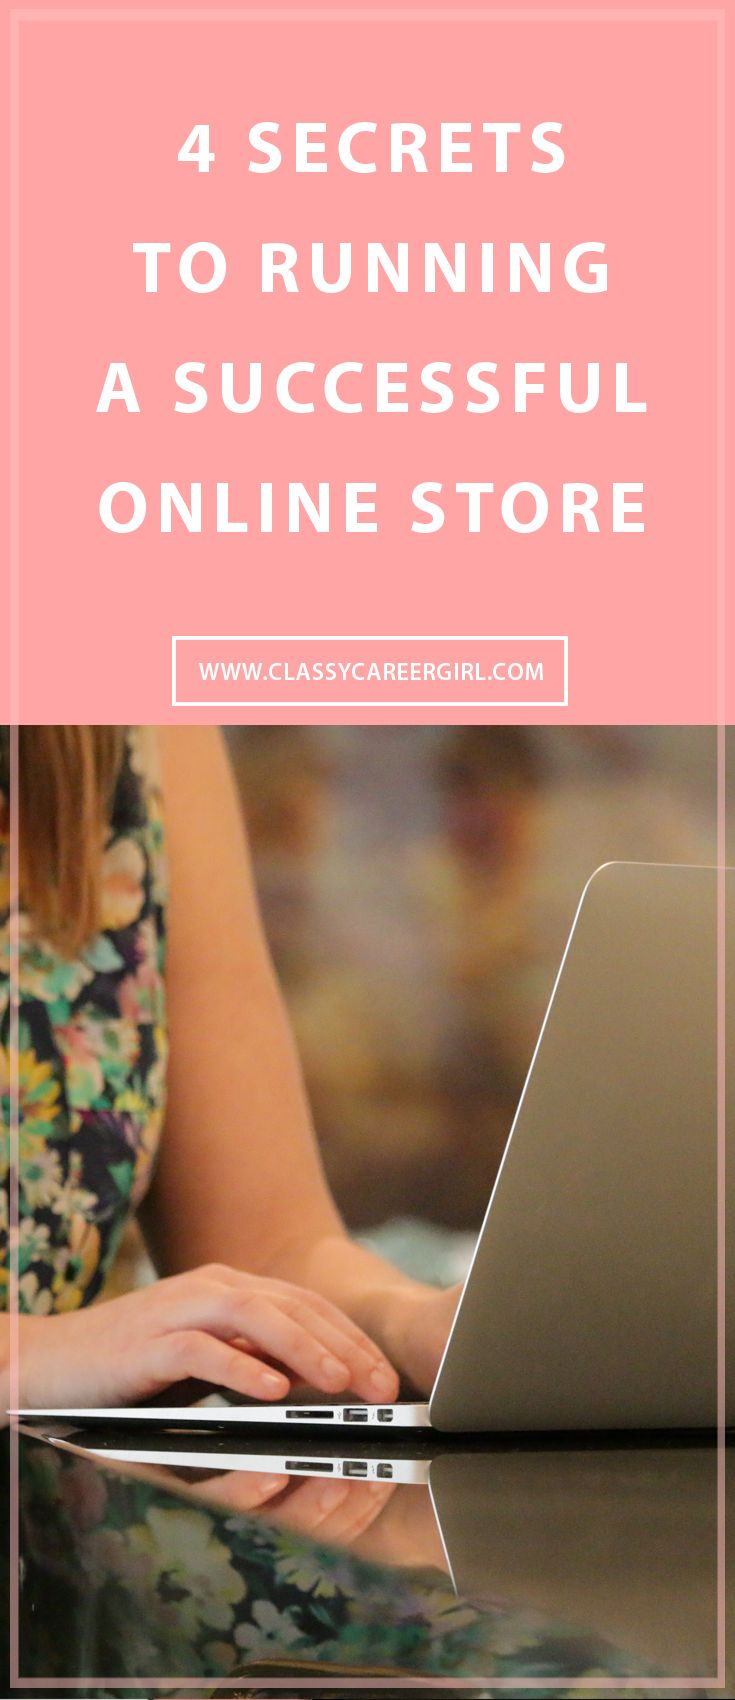 To help speed up the process and increase your chances, here's what you need to do: http://www.classycareergirl.com/2016/04/online-store/